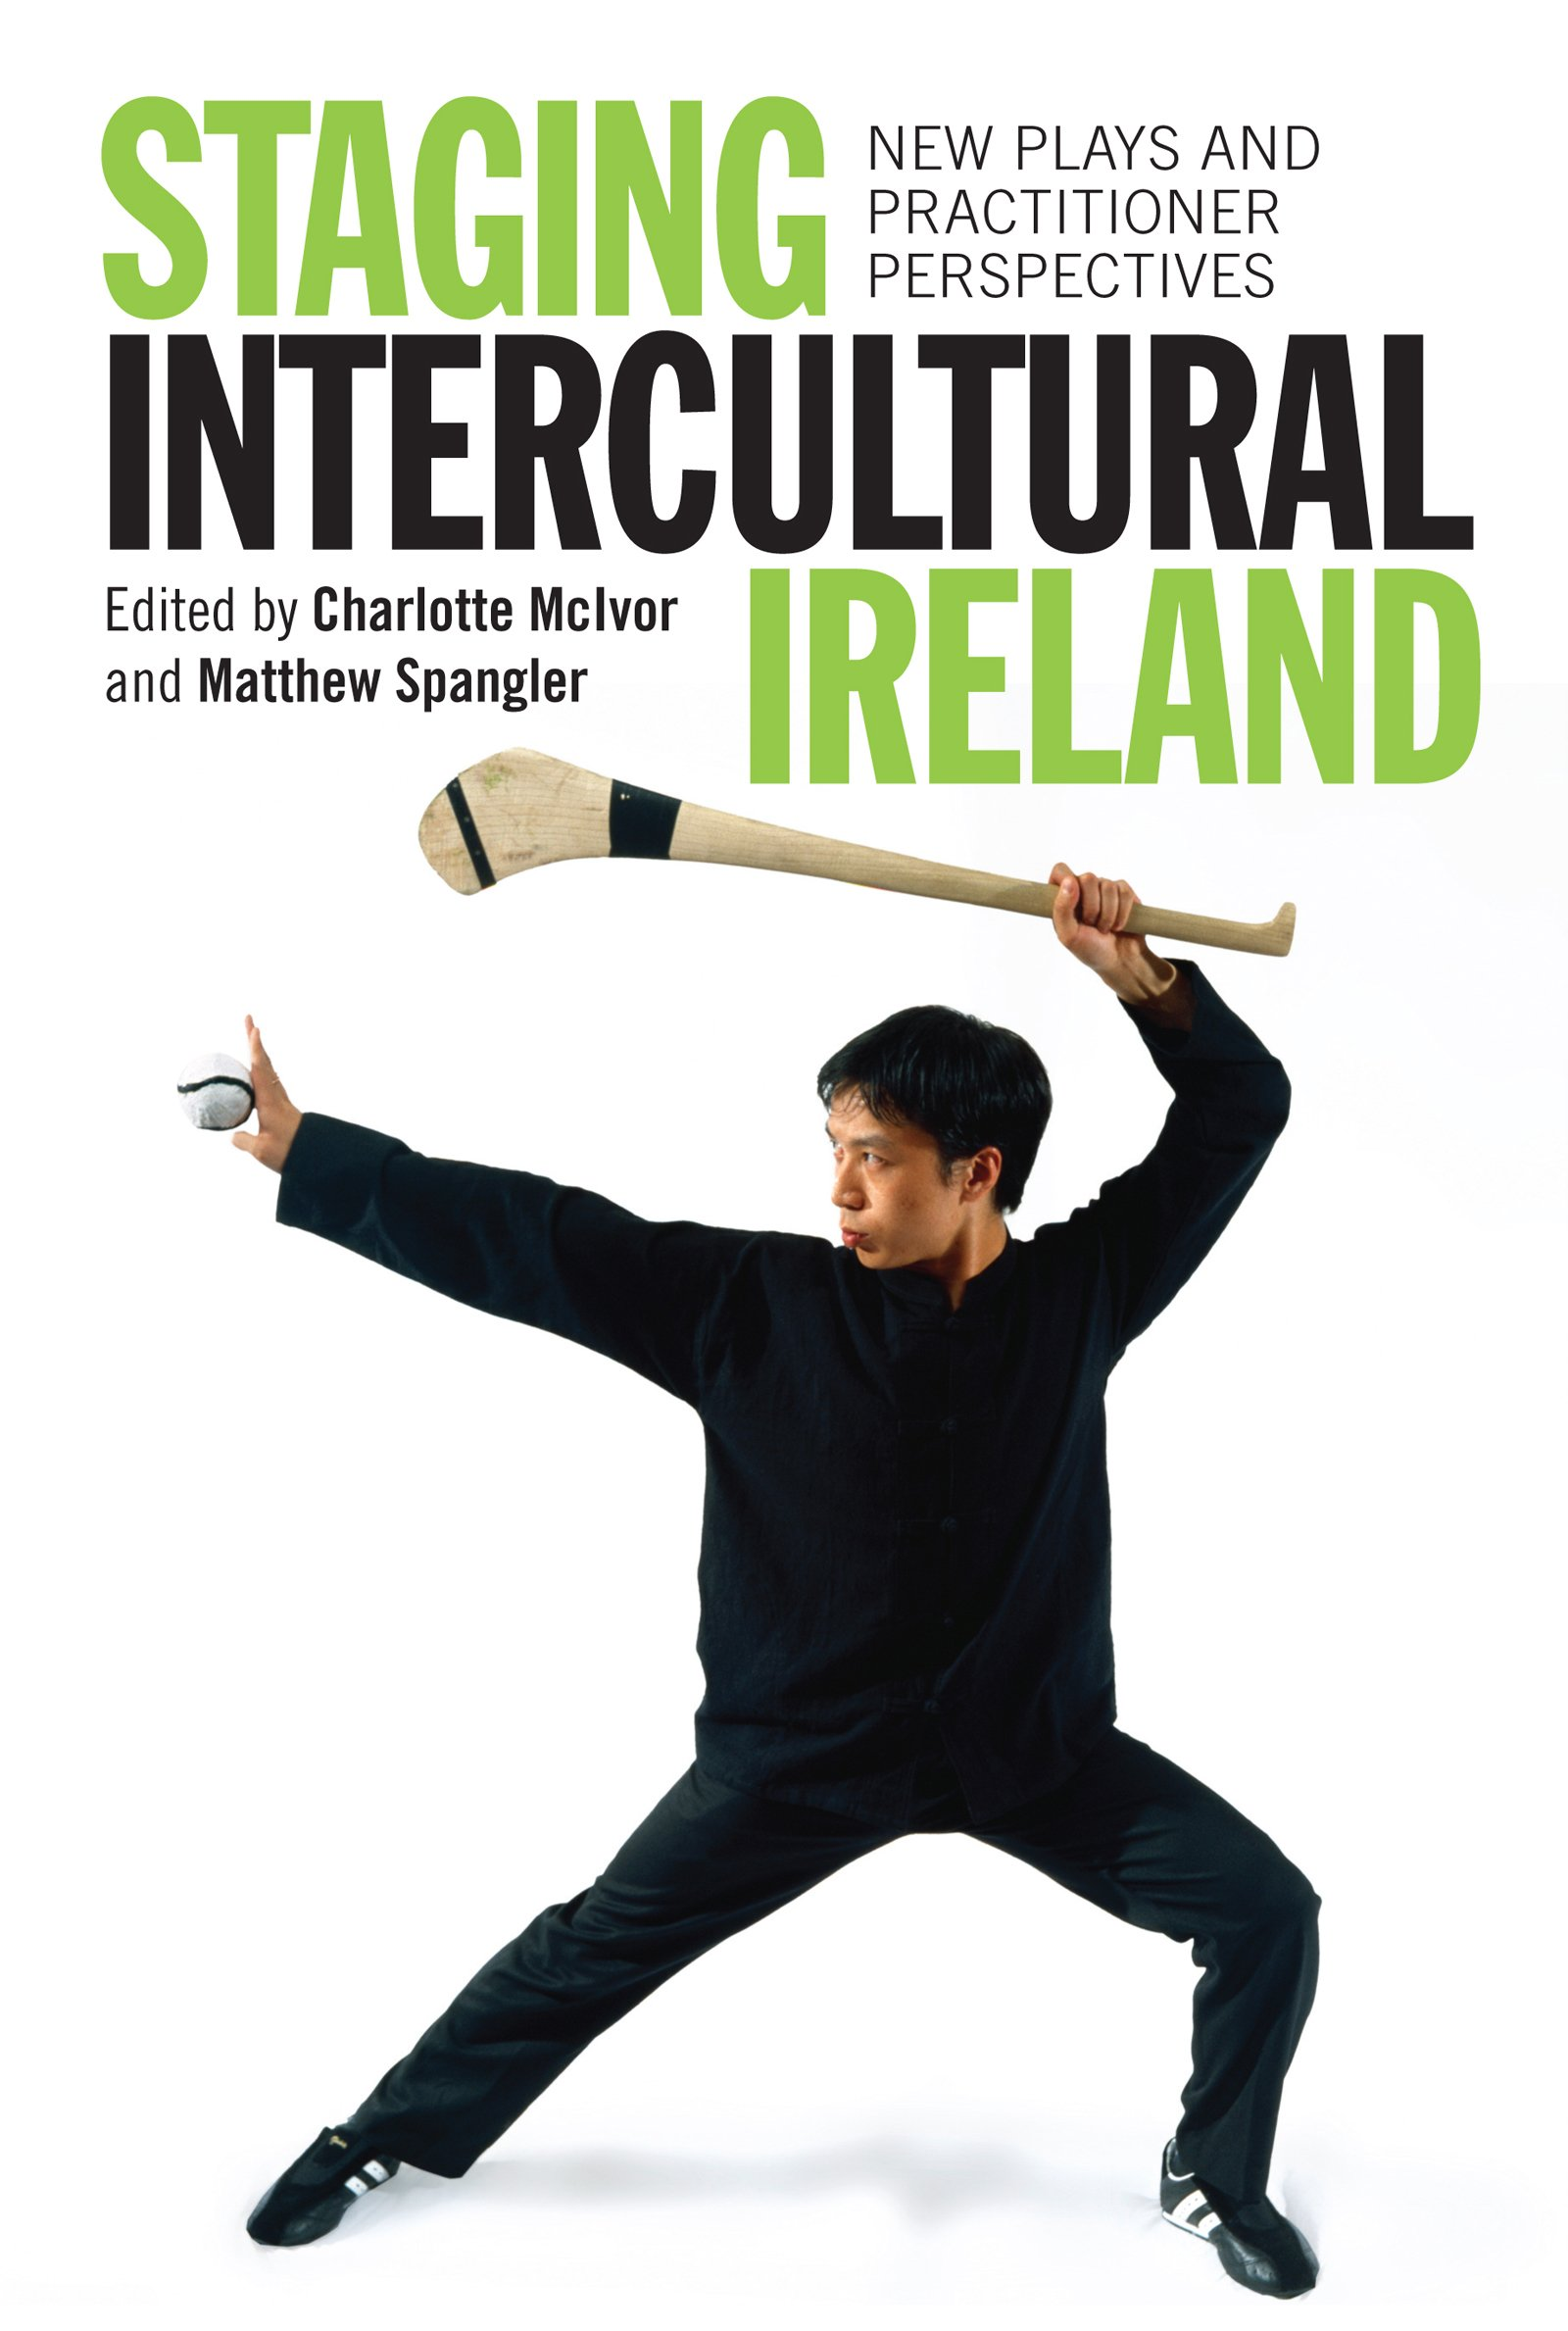 Staging Intercultural Ireland: New Plays and Practitioner Perspectives